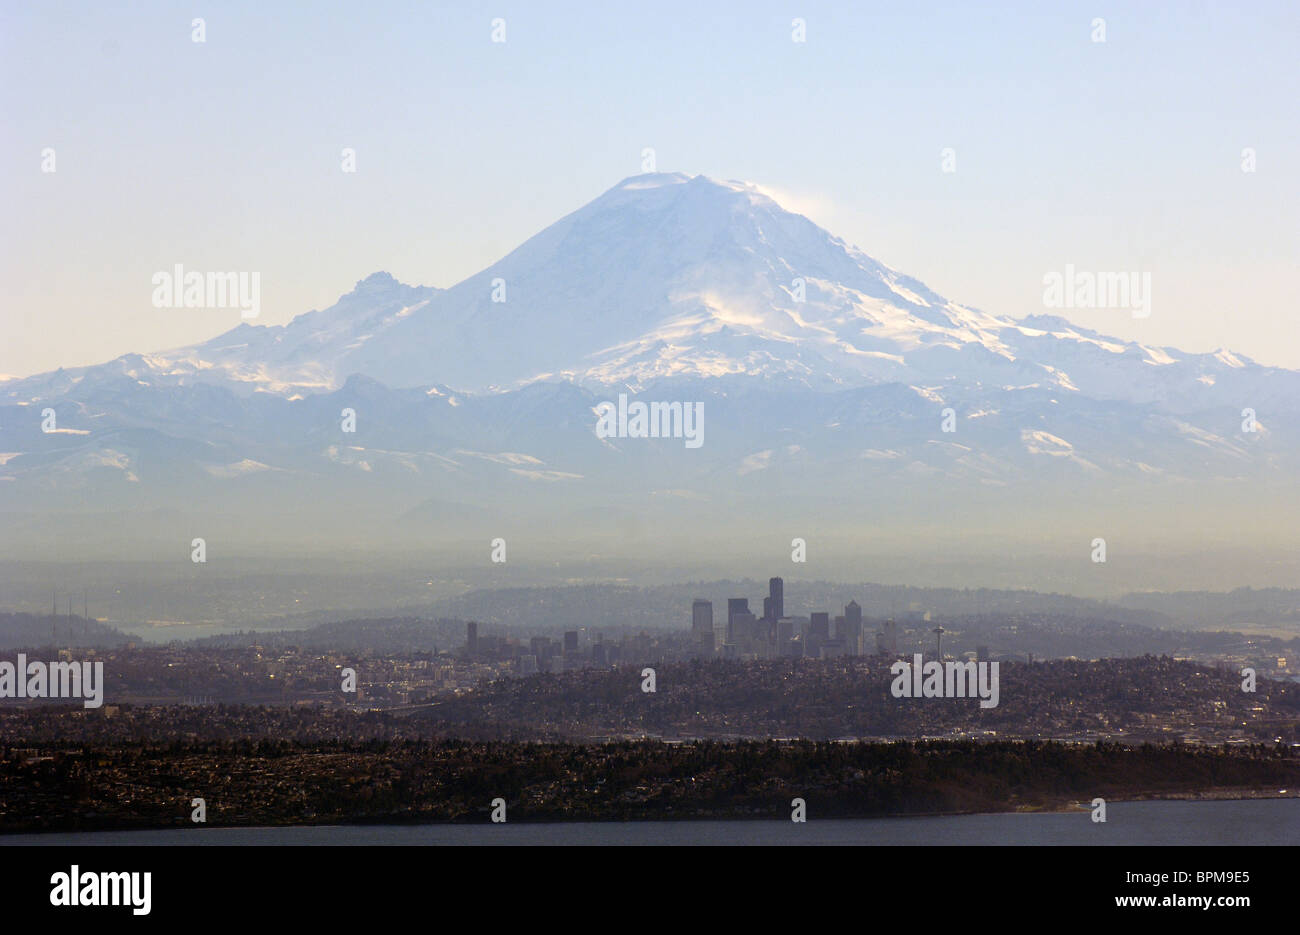 Seattle and Mount Rainier from Northwest - Stock Image